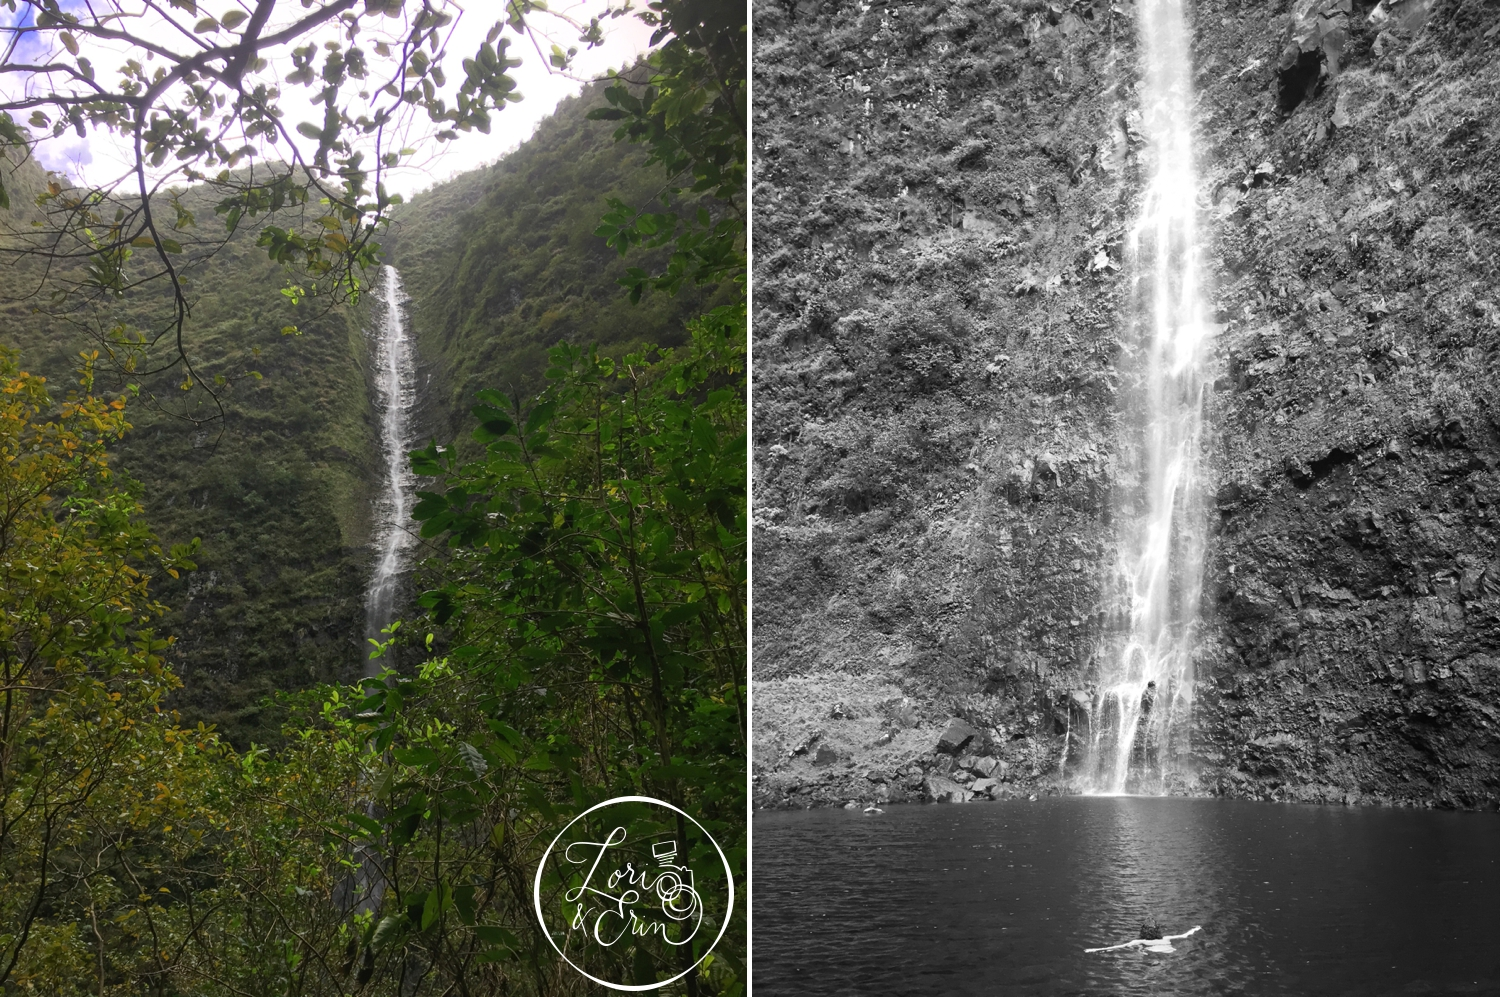 Hanakoa Waterfall, one of the more remote falls on the island.